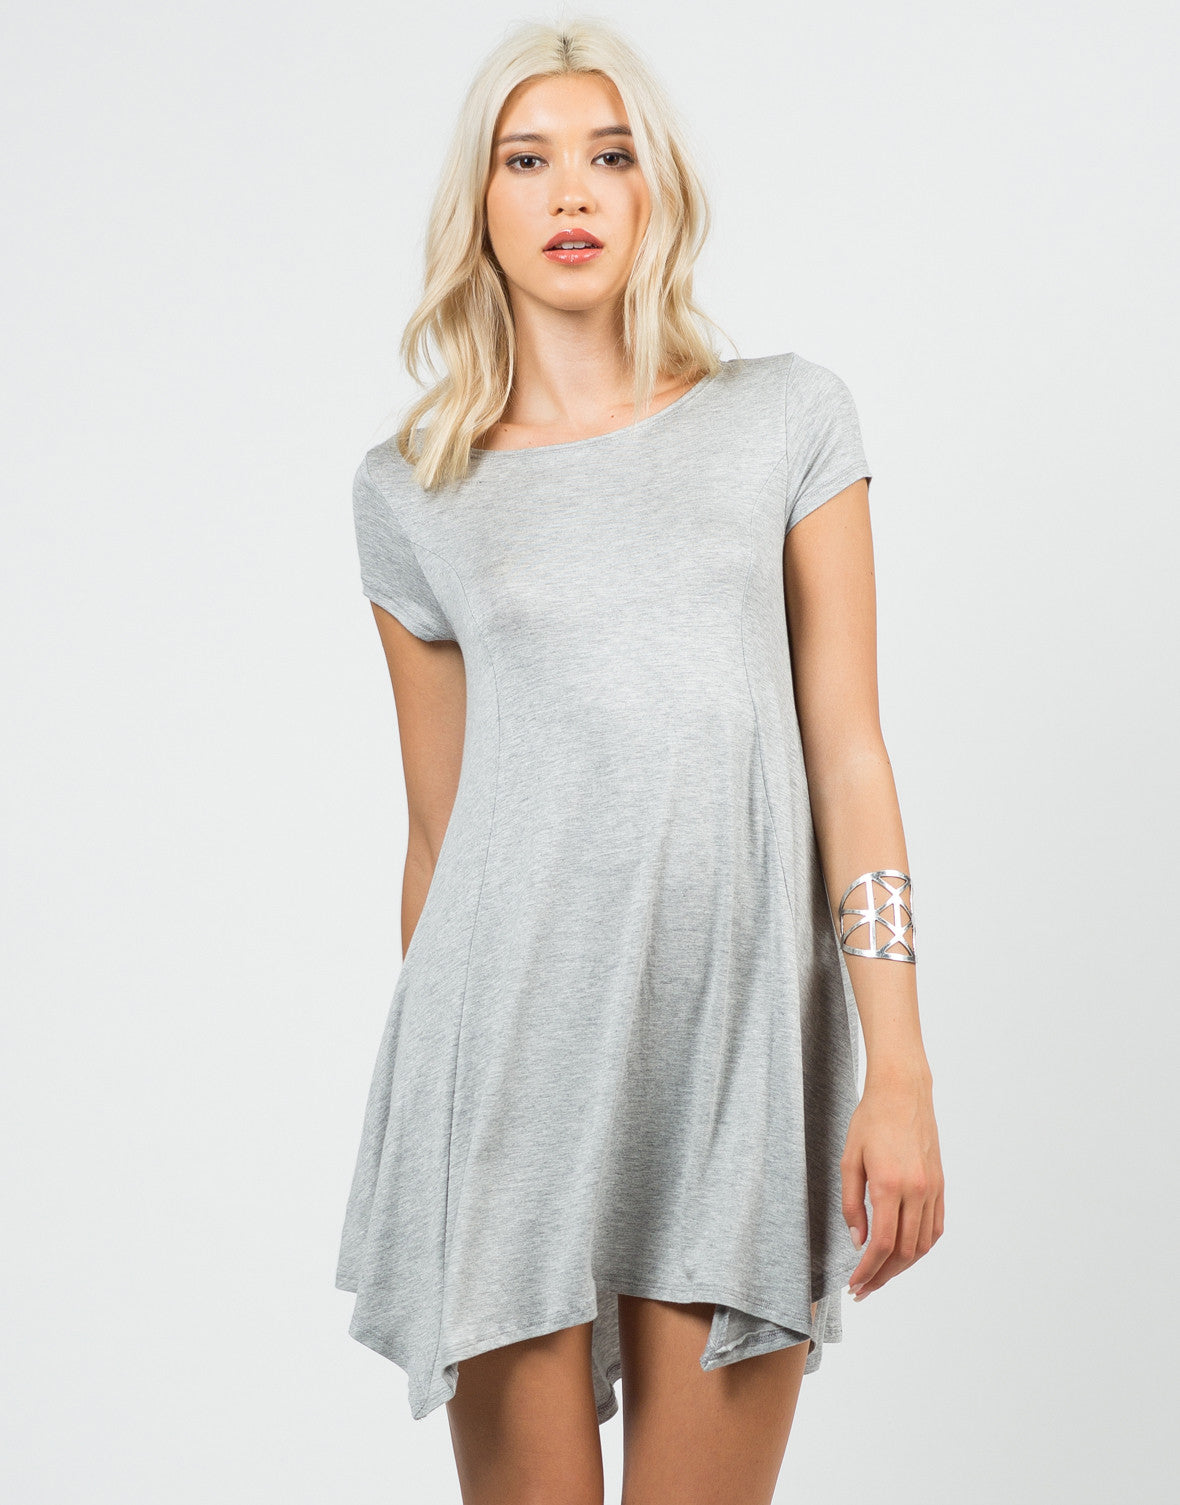 Front View of Basic Tunic Top